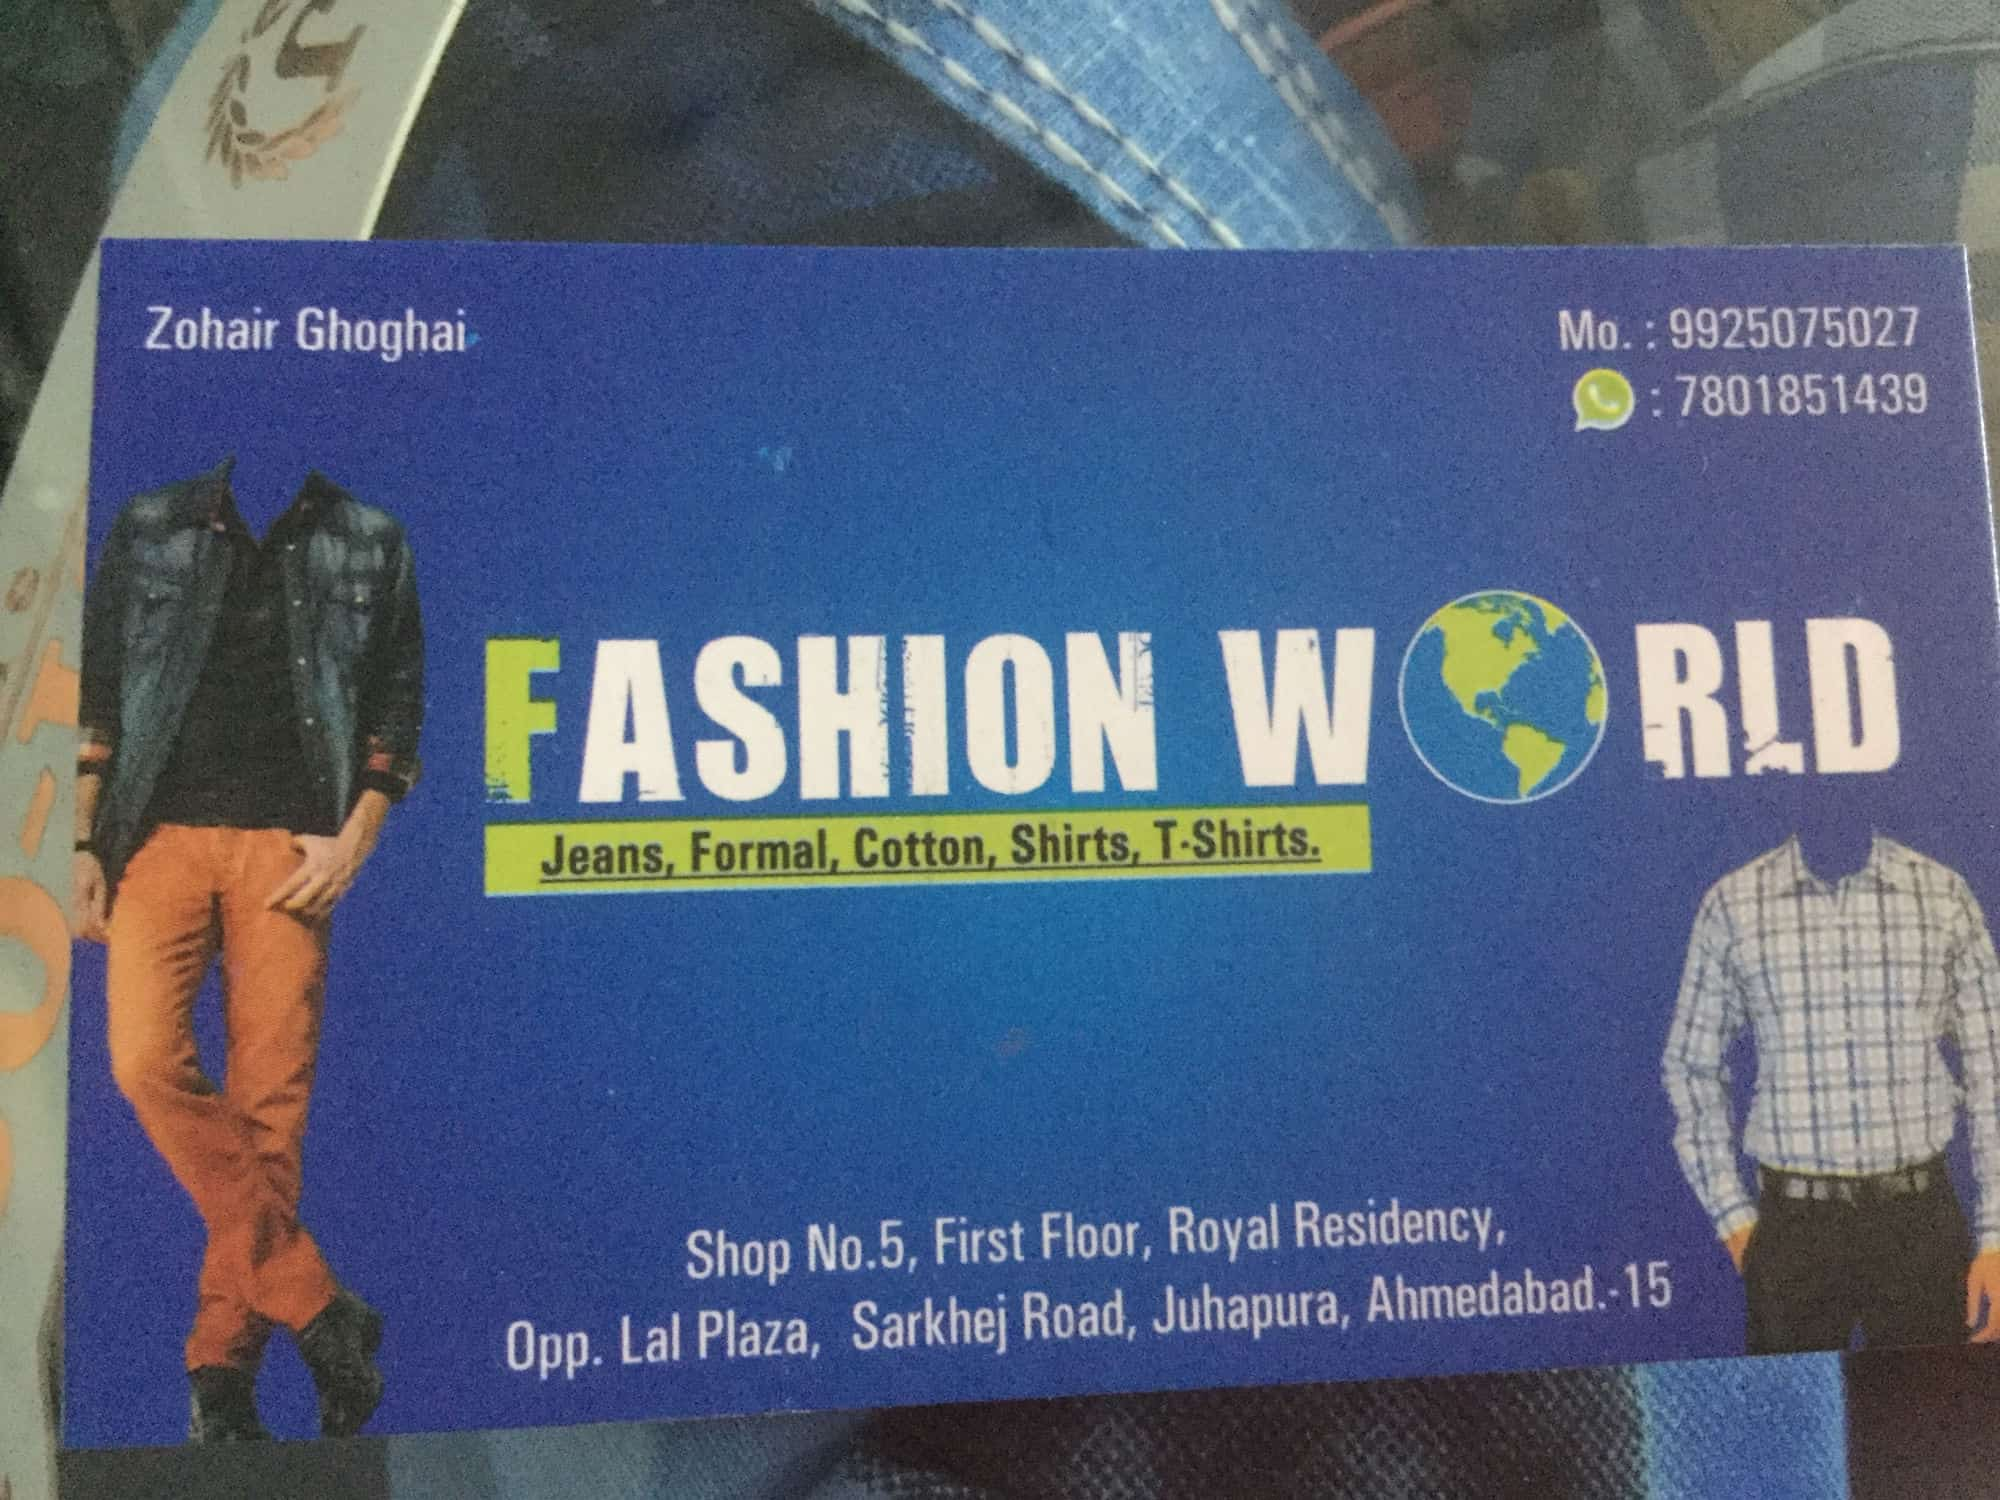 Fashion World Juhapura Gents Readymade Garment Retailers In Ahmedabad Justdial